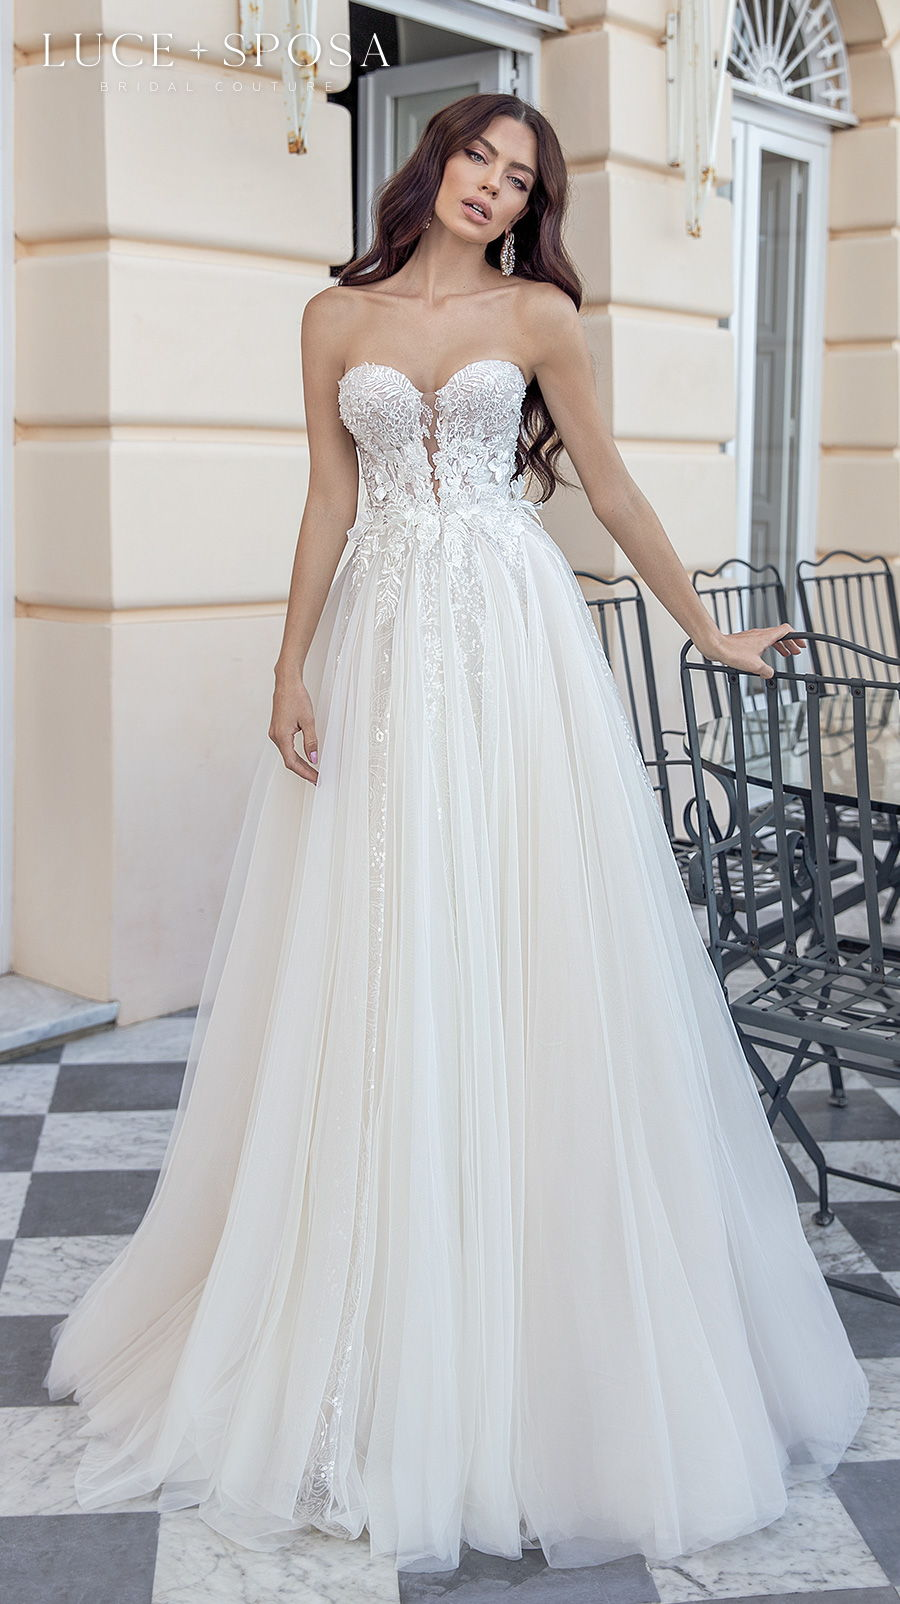 luce sposa 2021 sorrento bridal strapless sweetheart neckline heavily embellished bodice romantic a  line wedding dress mid back sweep train (dolores) mv